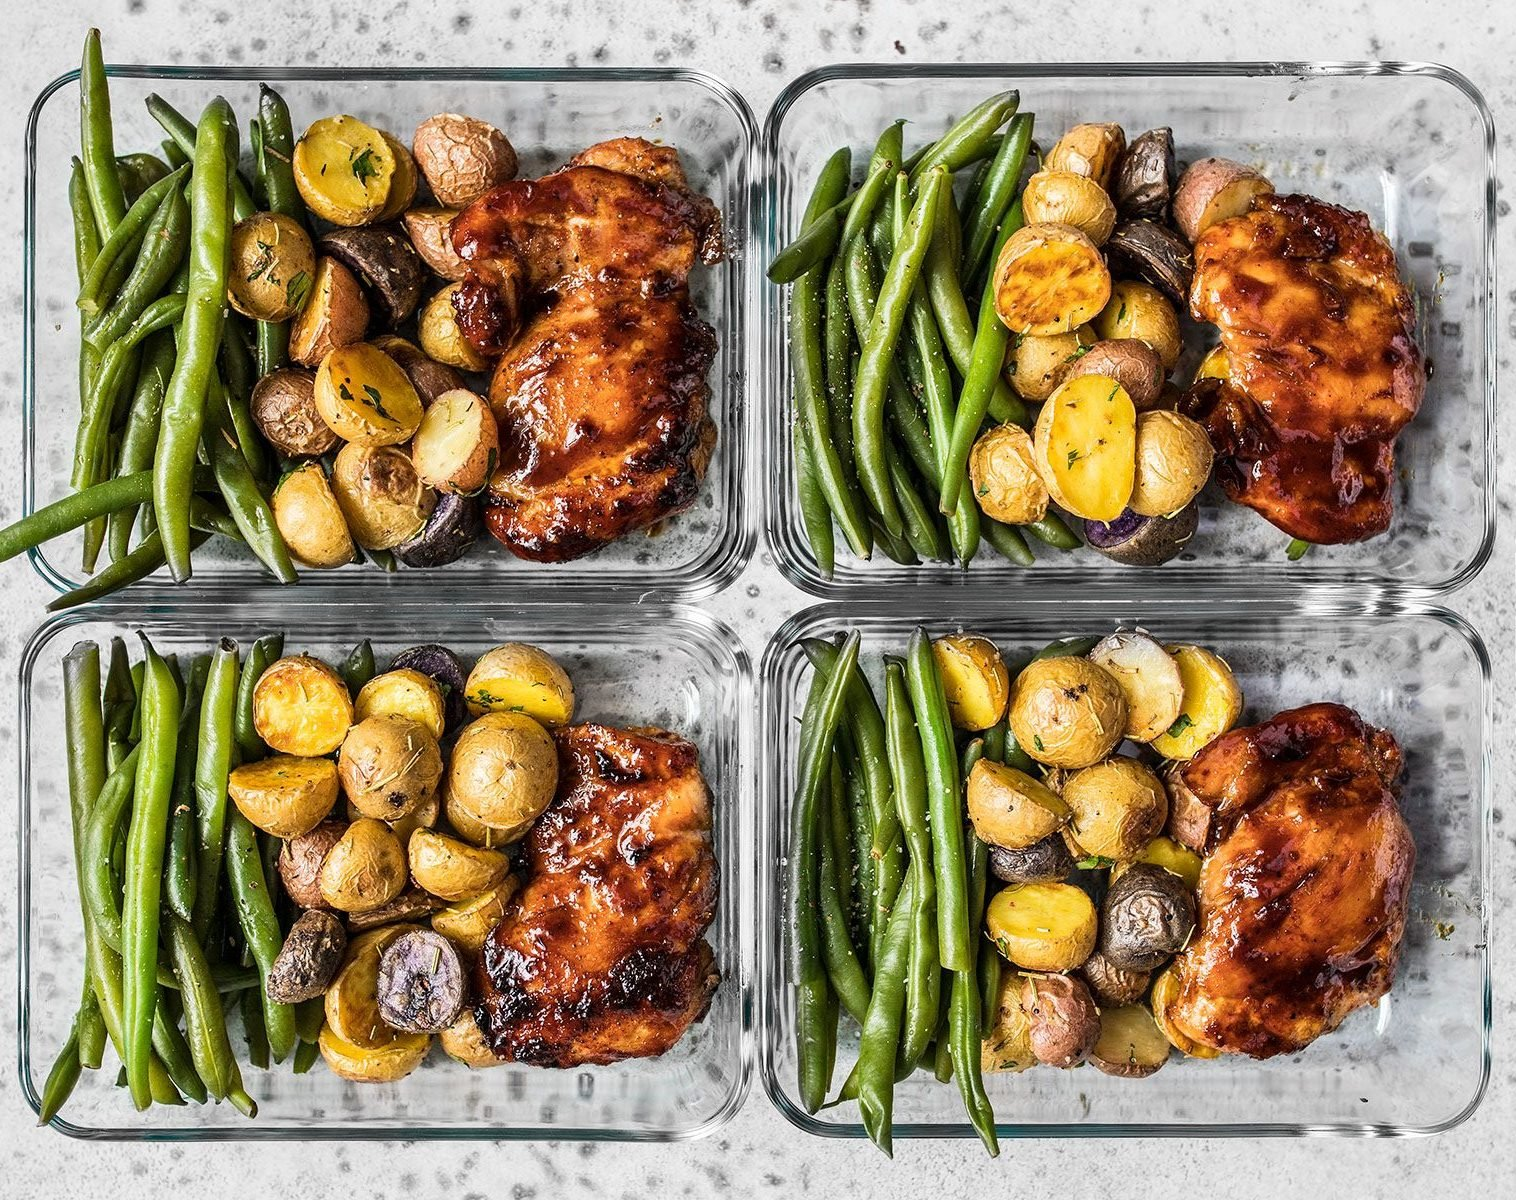 What Is Meal Prep? And How To Meal Prep Better (according to